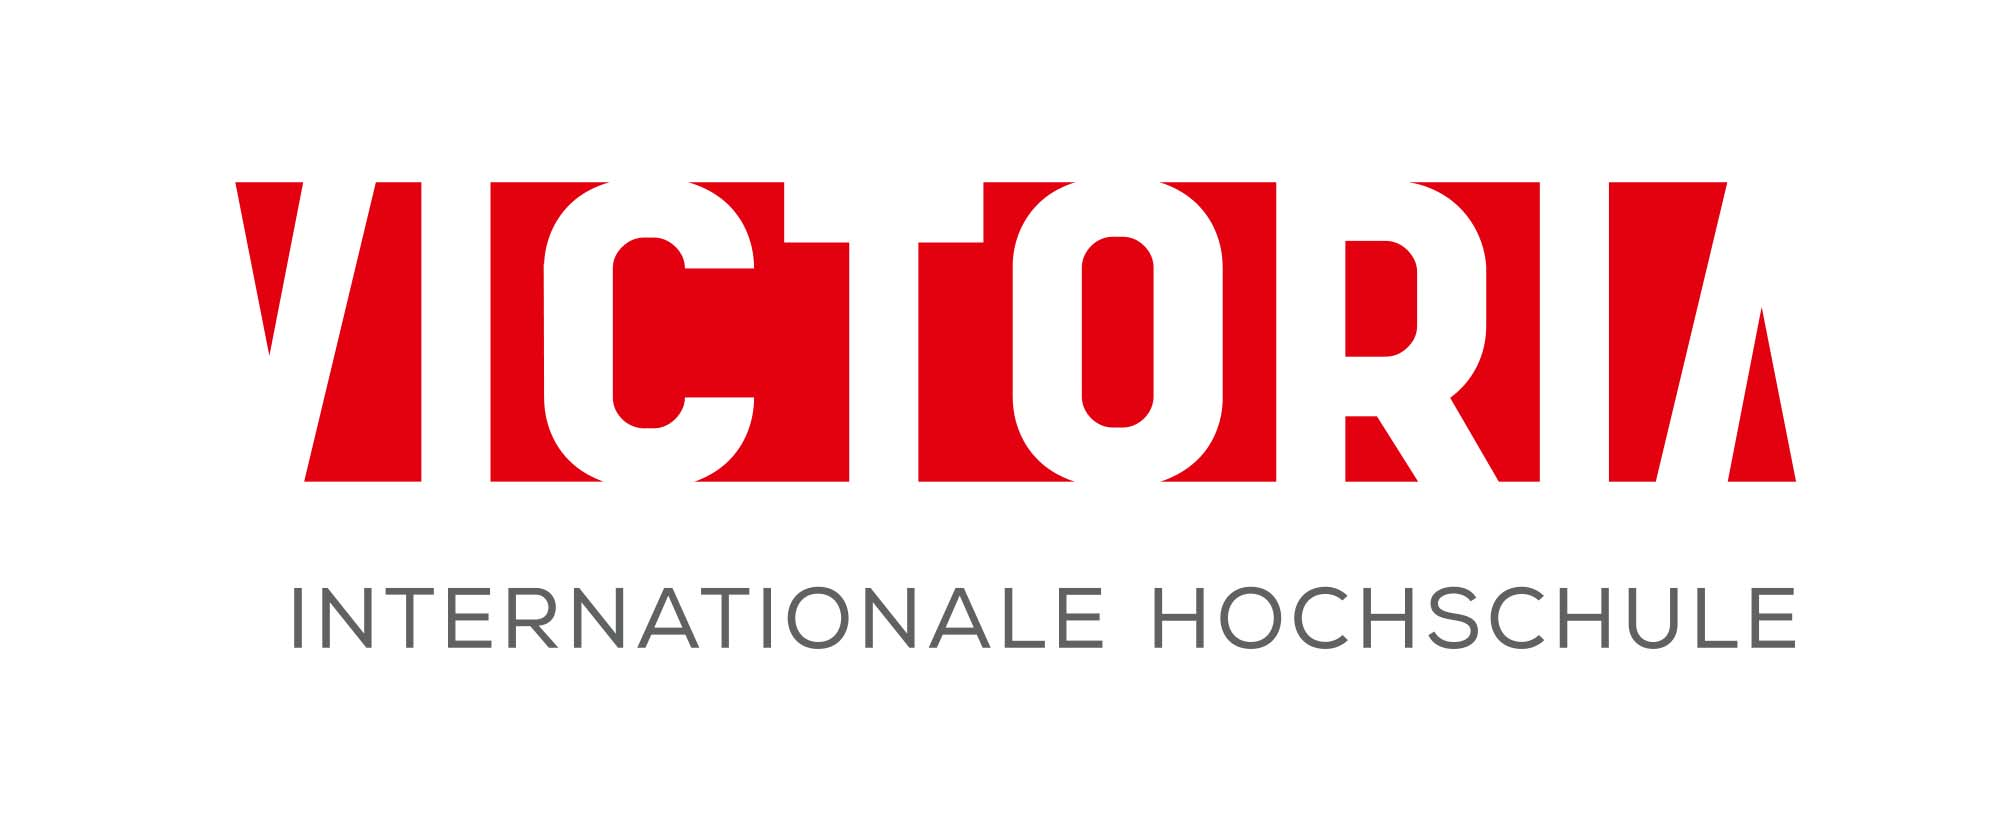 VICTORIA | Internationale Hochschule